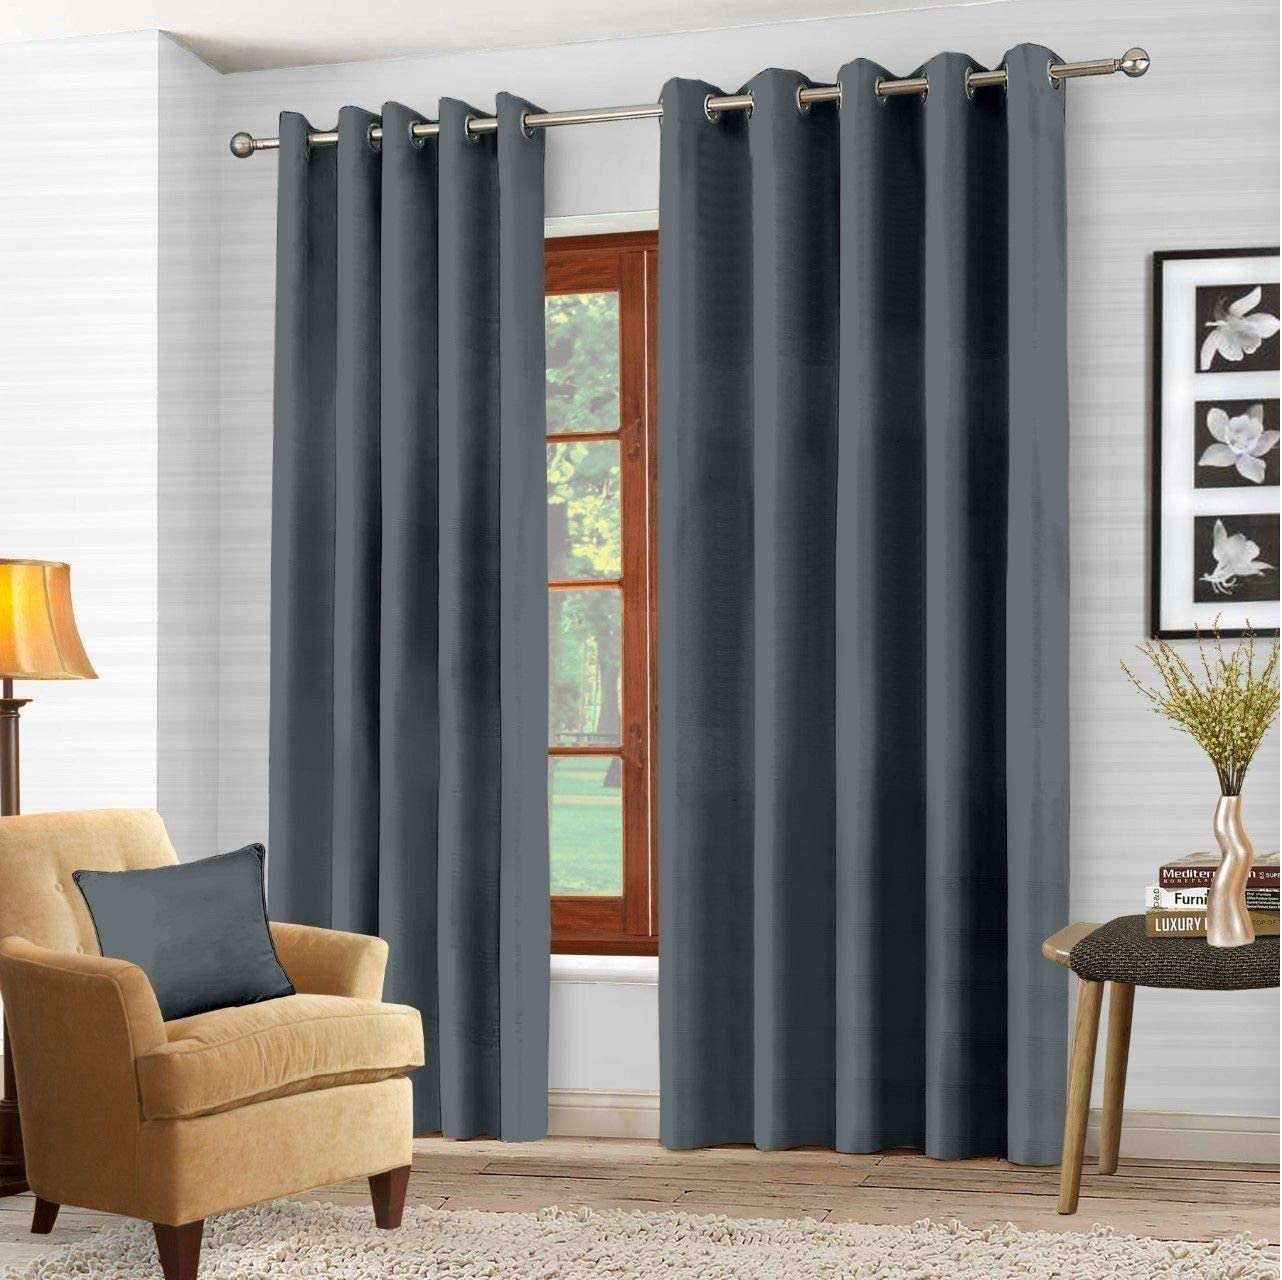 EYELET RING CHARCOAL BLACKOUT PAIR CURTAINS POLYESTER WEAVED THERMAL READY MADE